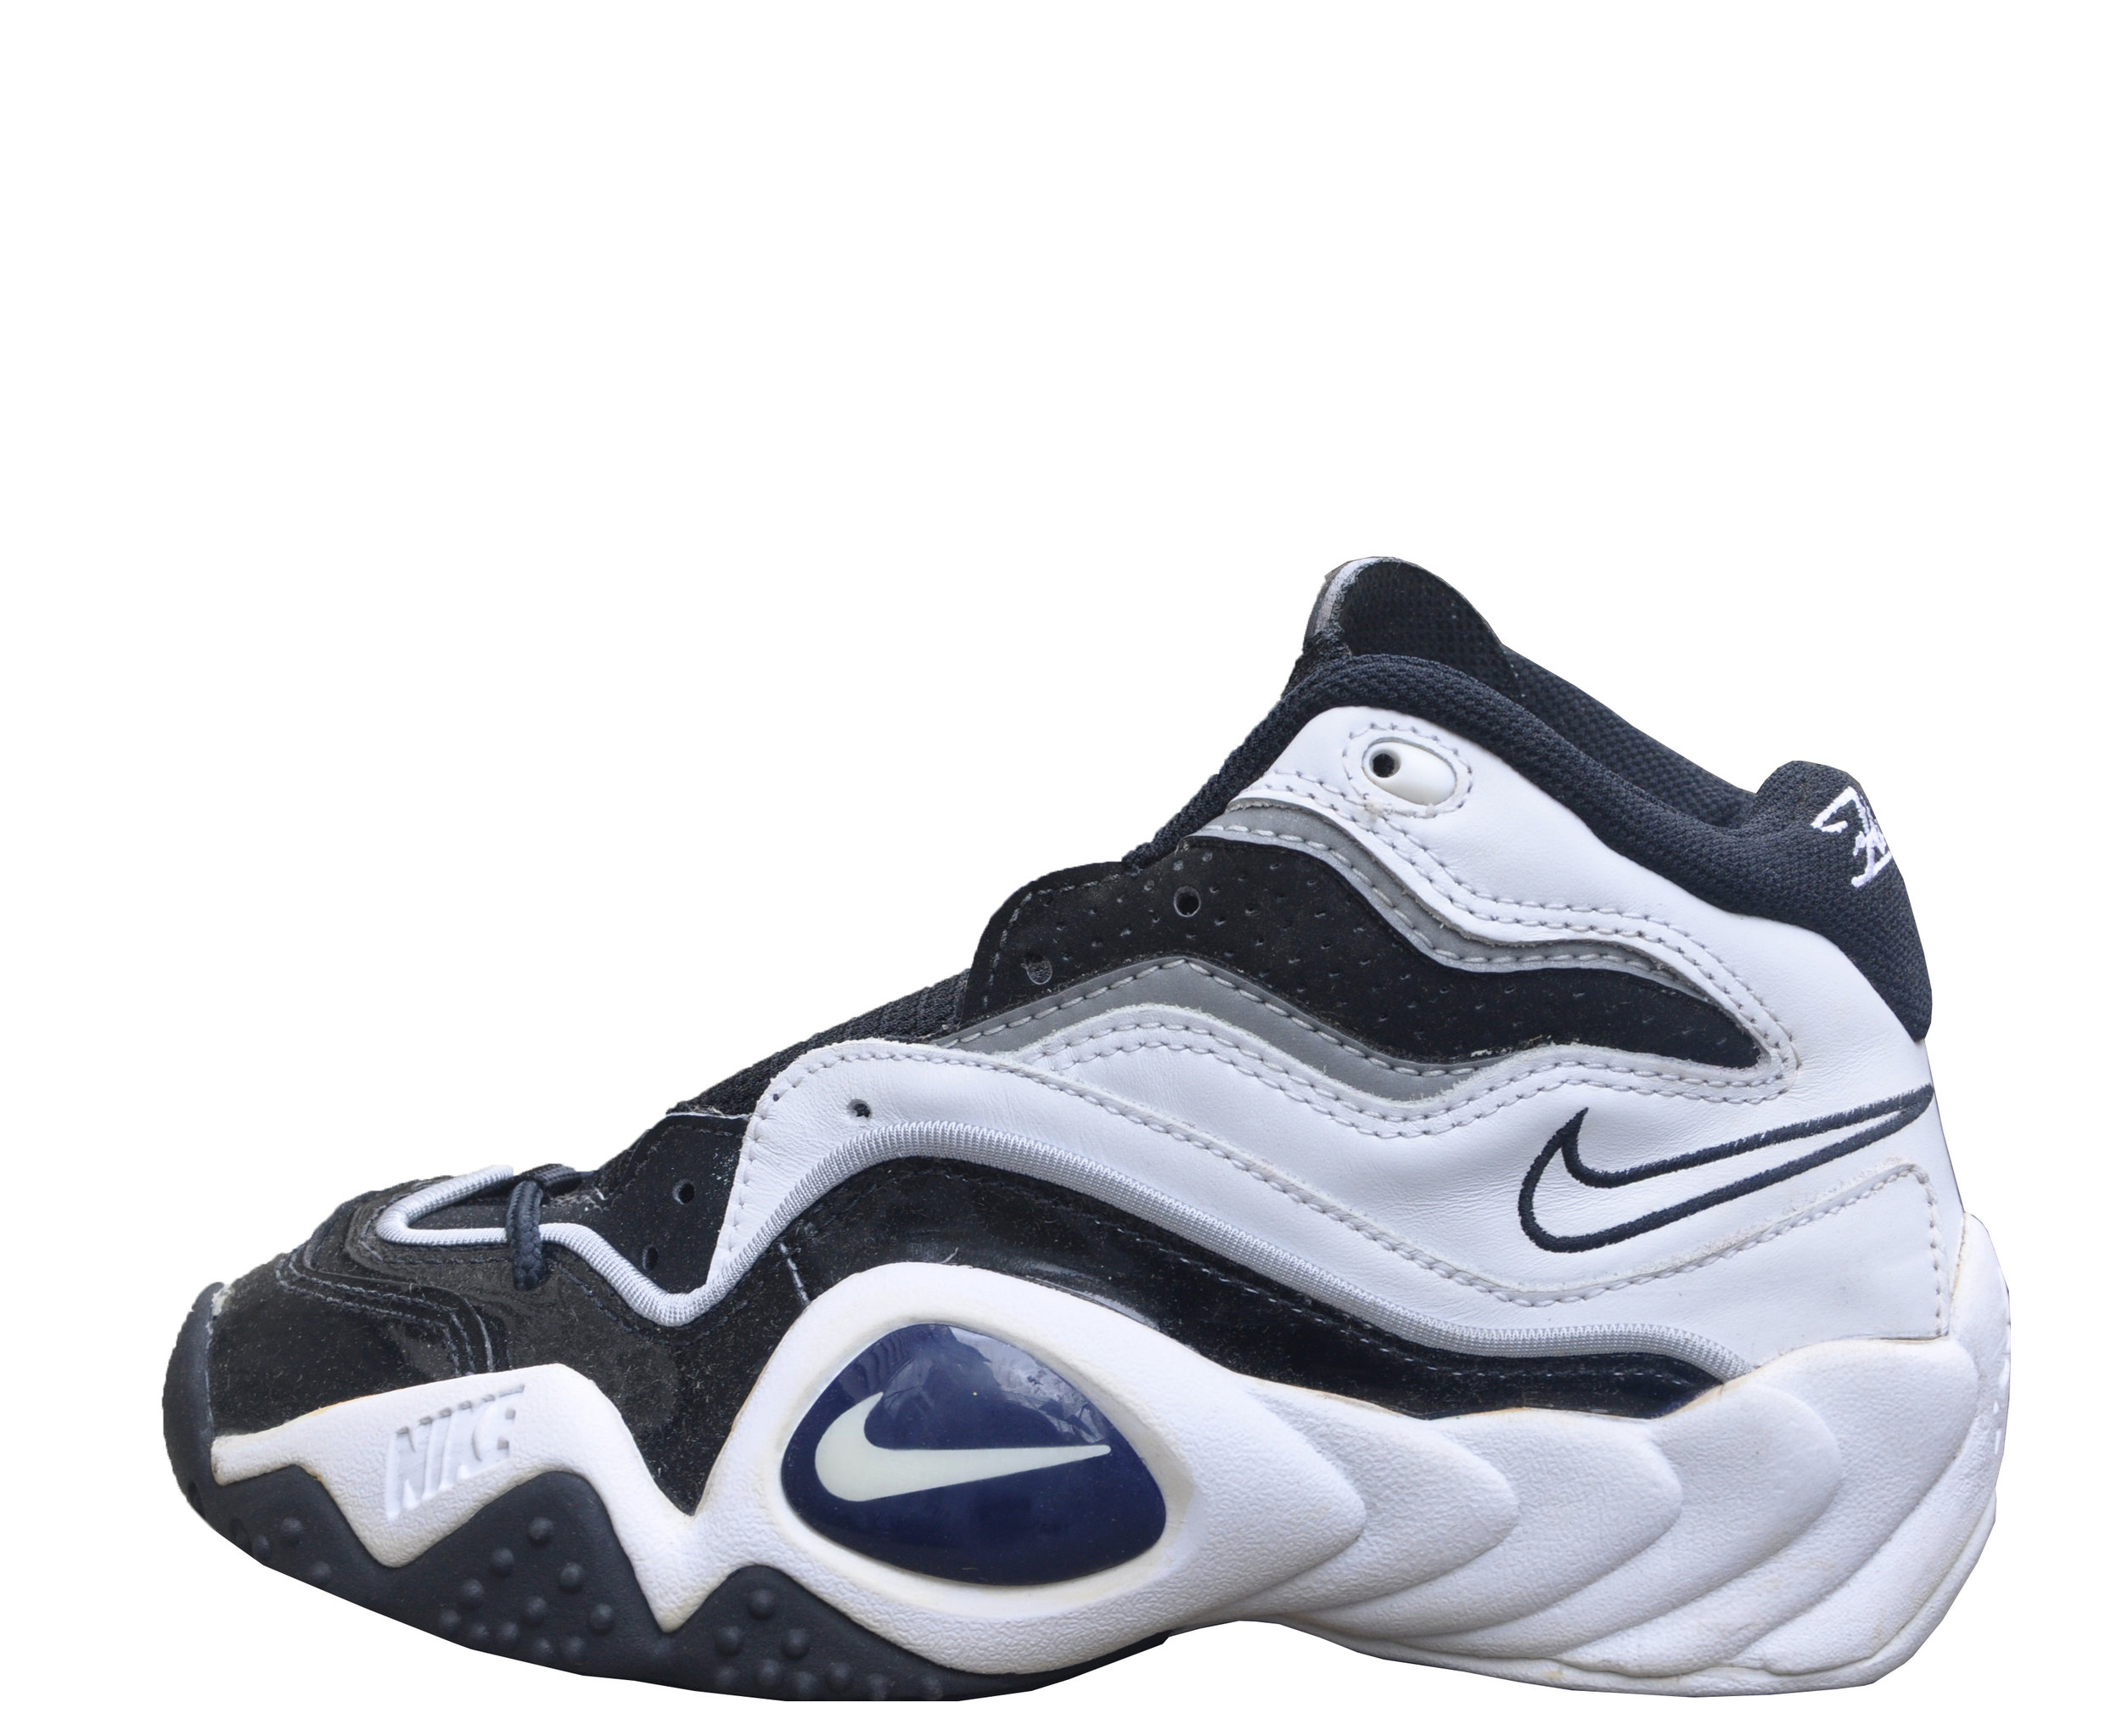 nike patent leather basketball shoes